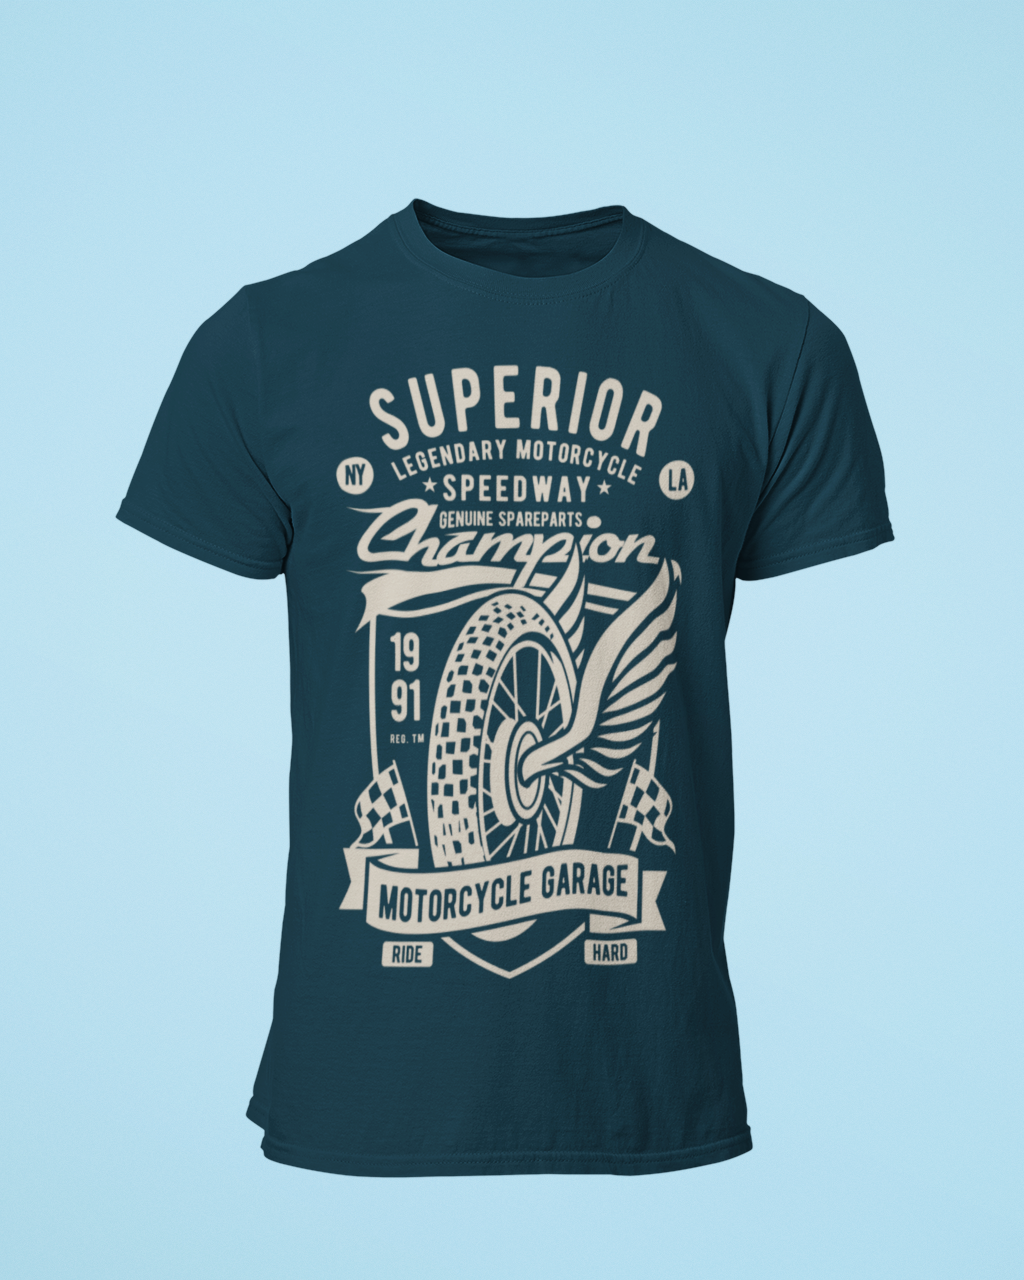 Superior Speedway - Men's Half Sleeve T-Shirt - Petrol Blue